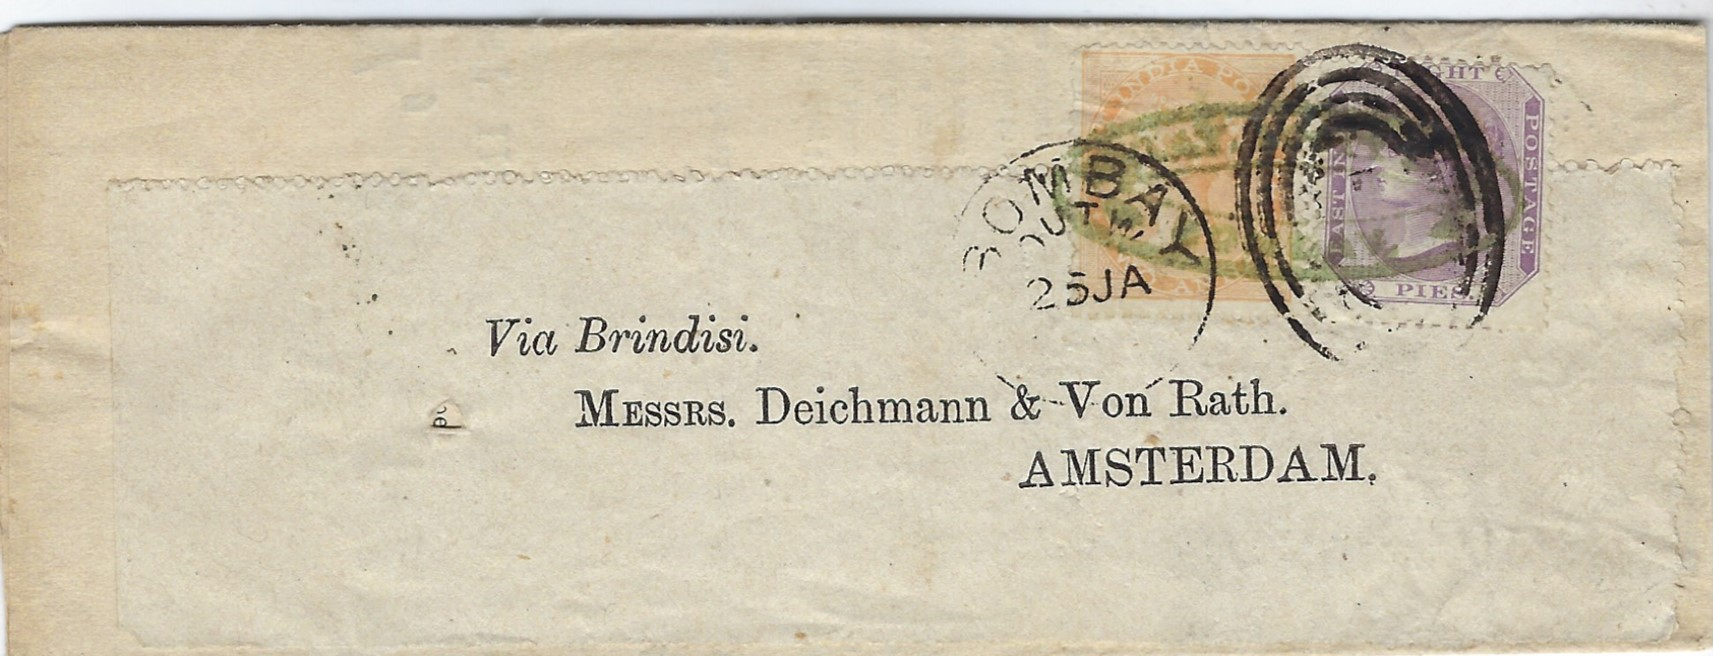 India 1874 'Finlay, Scott and Co's/ East India Price Current' folded printed document  from Bombay to Amsterdam, endorsed 'Via Brindisi', franked 1860 8p. and 1865 watermarked 2a yellow tied Bombay/Outw duplex and by sender's chop, reverse with black PD and unusually with arrival cds.